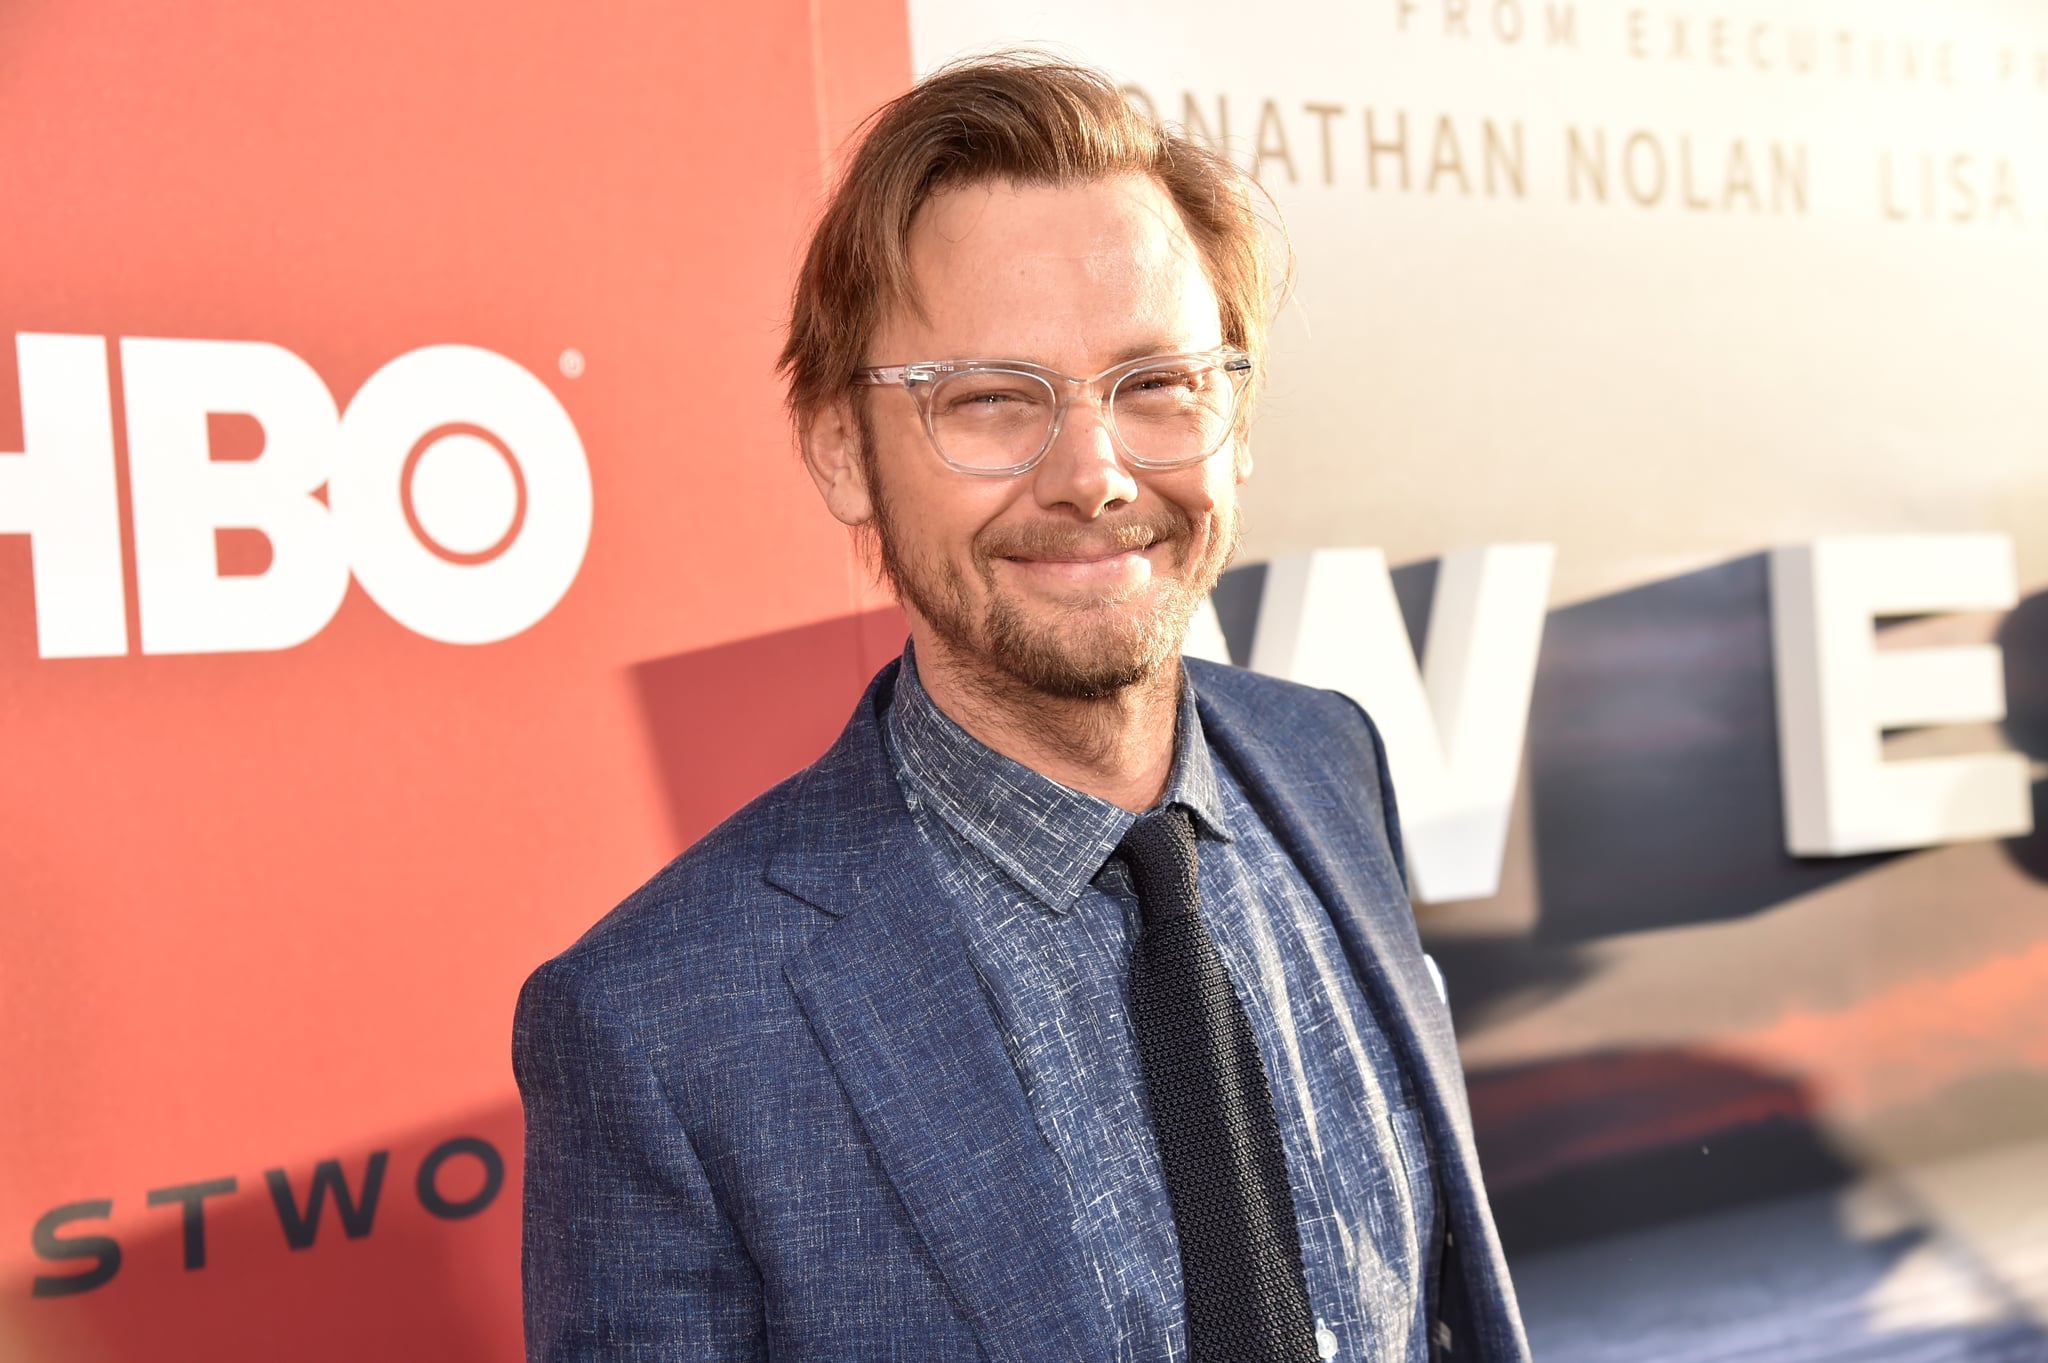 LOS ANGELES, CA - APRIL 16:  Jimmi Simpson attends the Los Angeles Season 2 premiere of the HBO Drama Series WESTWORLD at The Cinerama Dome on April 16, 2018 in Los Angeles, California.  (Photo by Jeff Kravitz/FilmMagic for HBO)